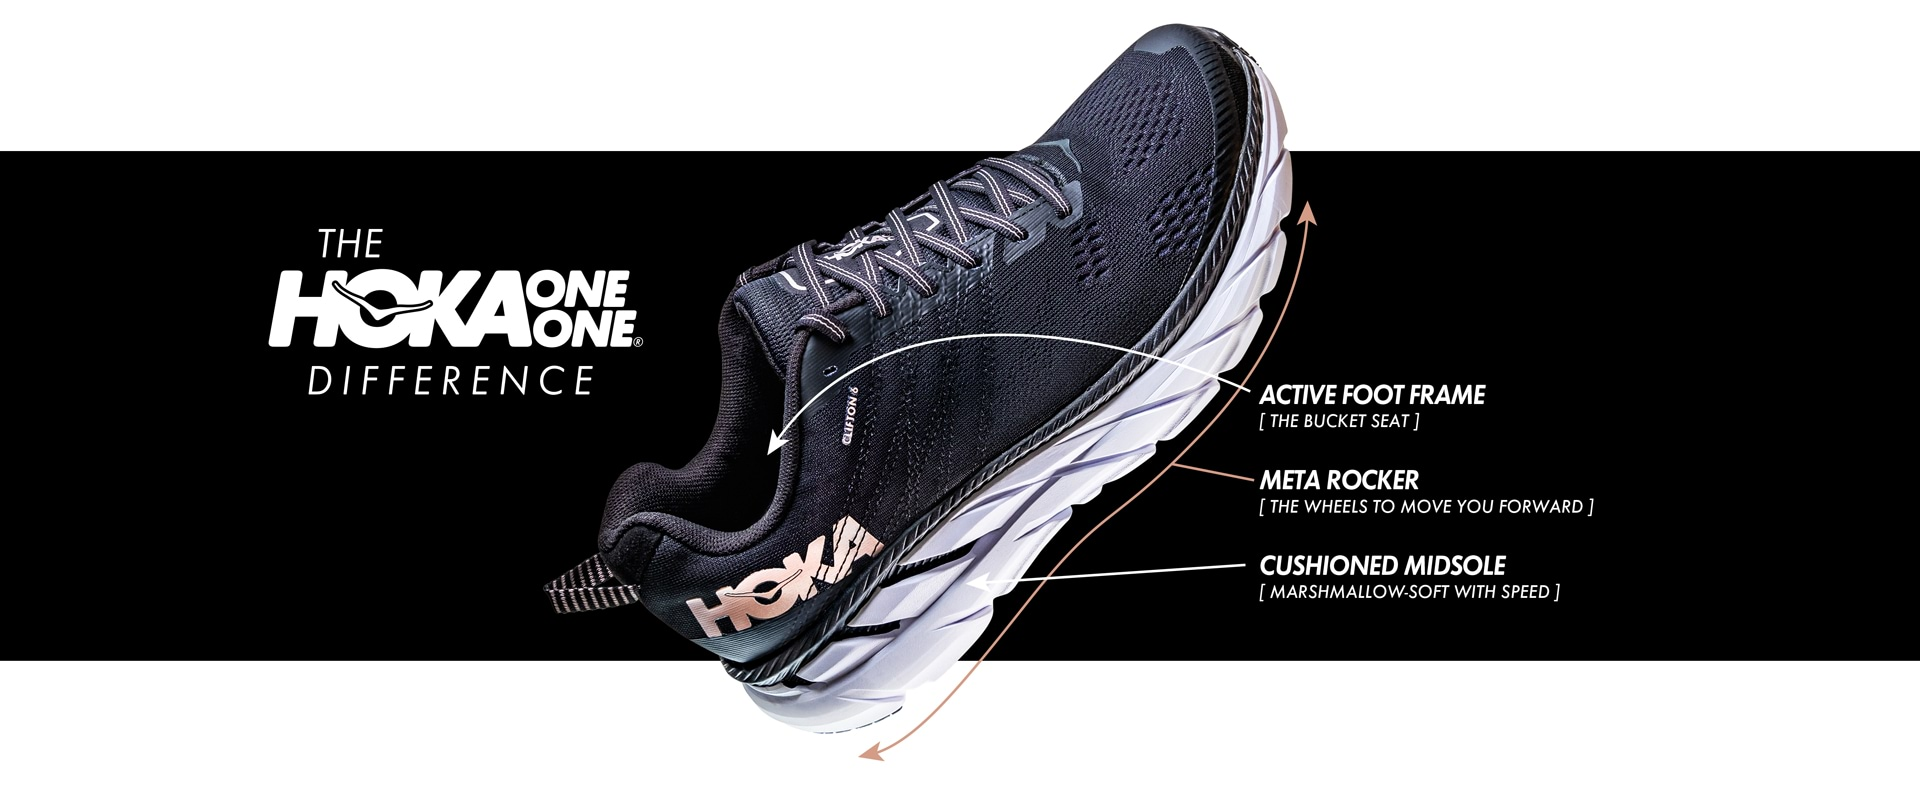 Women's Hoka Shoe Features